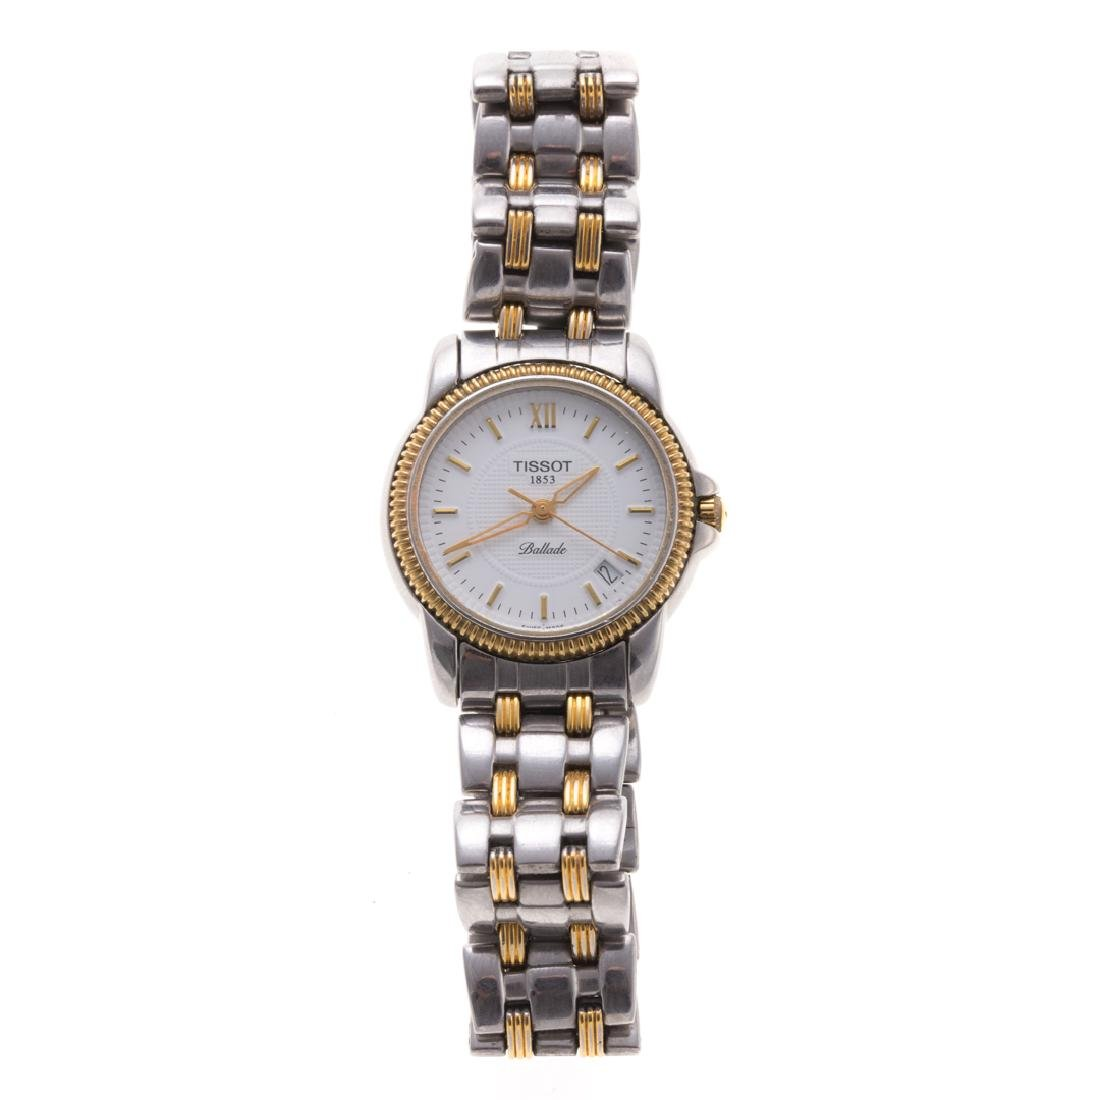 A Lady's 14K Merano & Two Tone Tissot Watches - 5